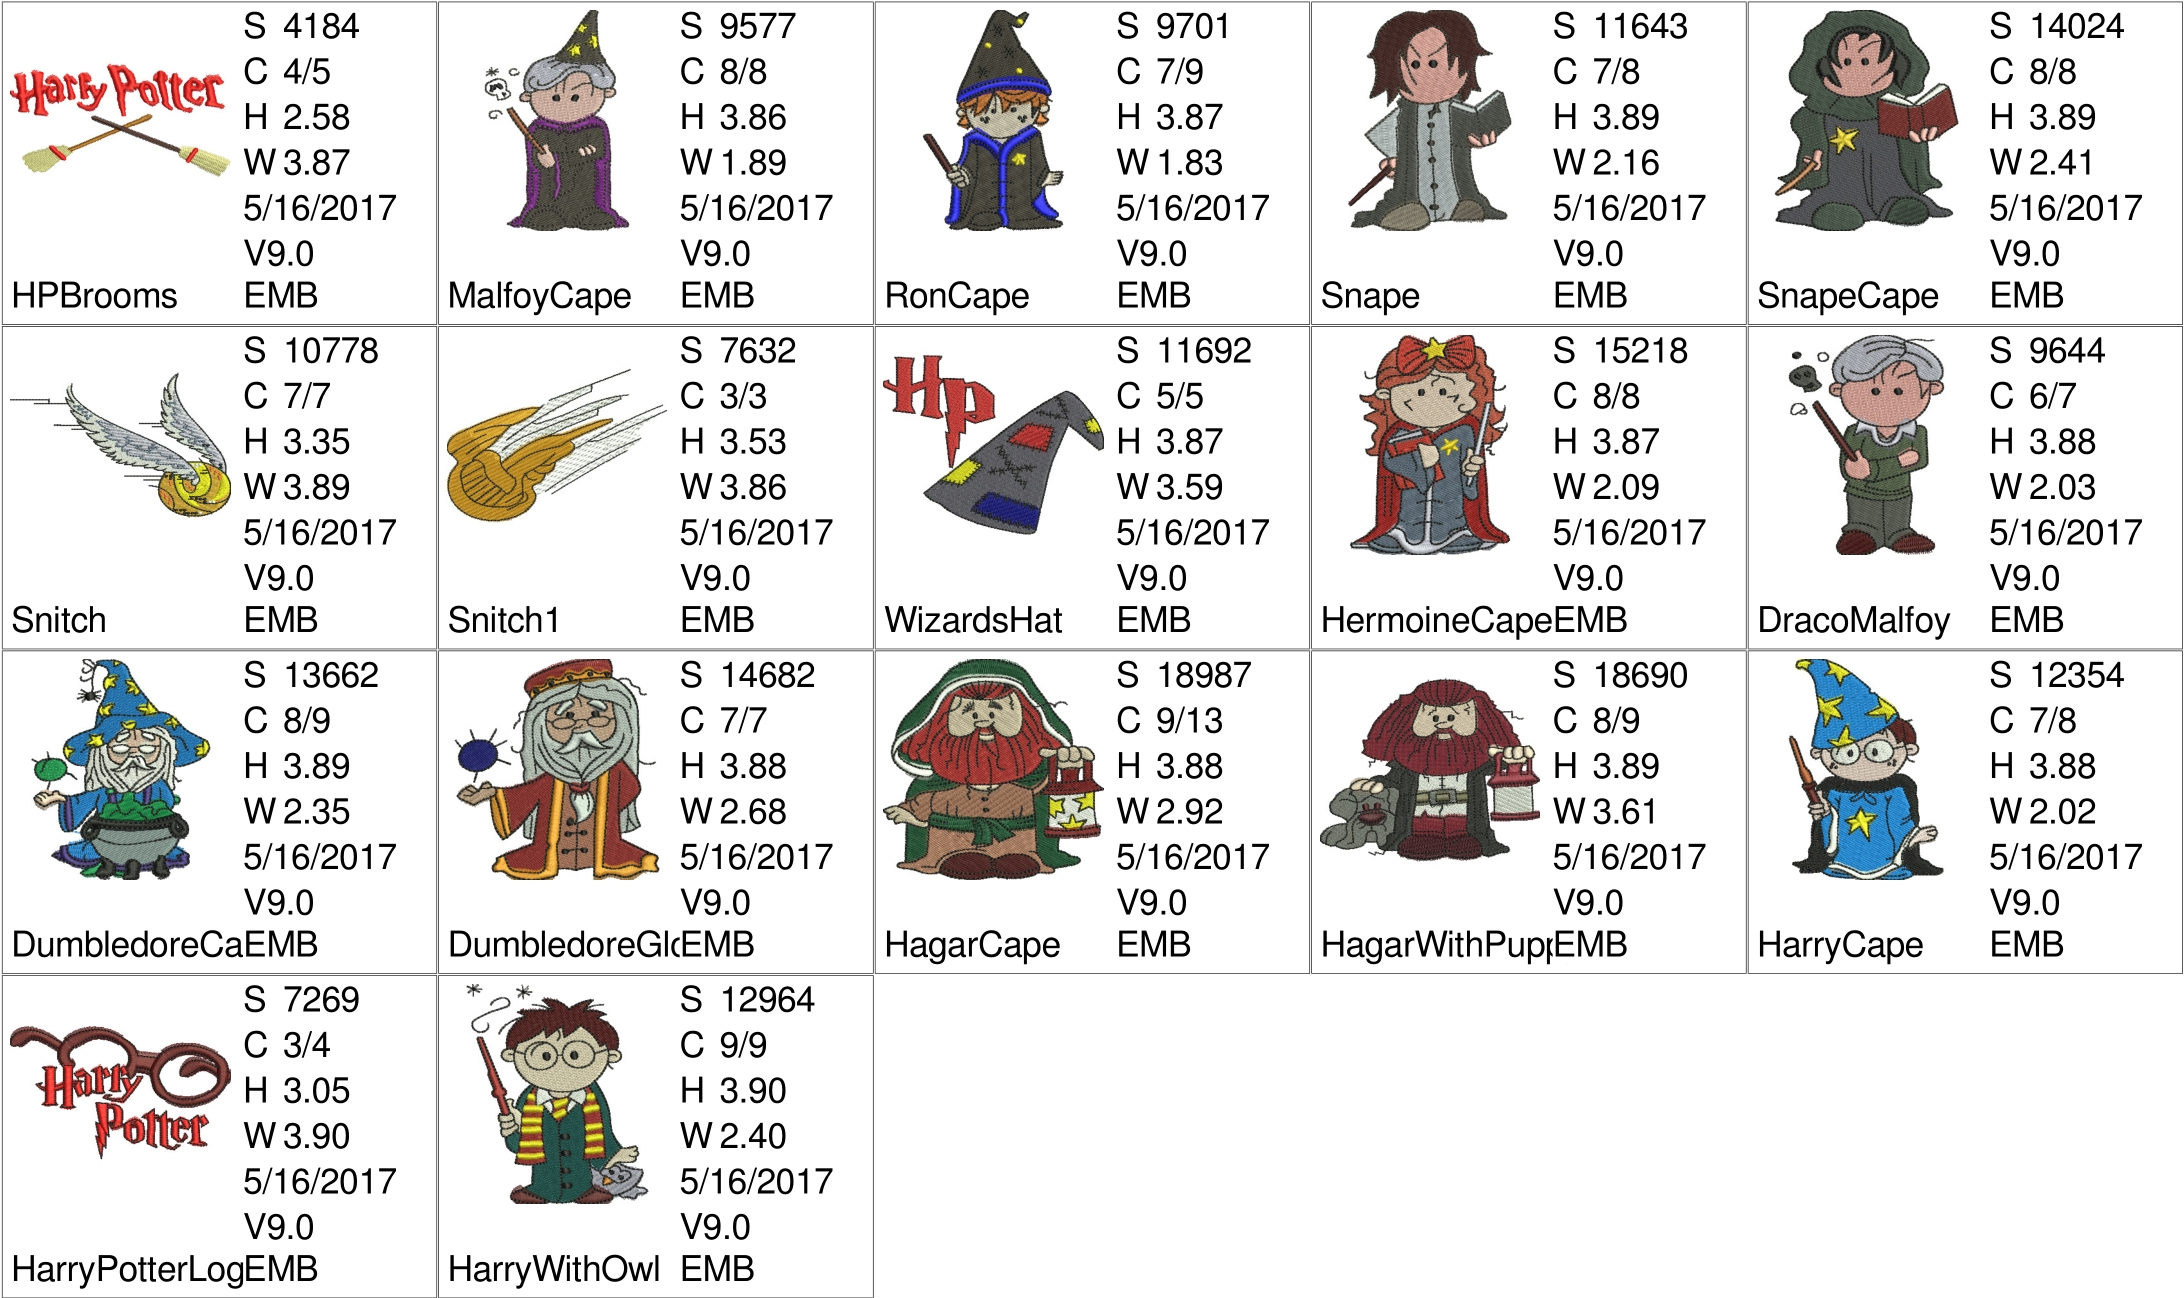 Harry Potter Embroidery Design Chibis For 4in Hoops A Total Of 14 Designs Buy The Whole Set And Get 6 Free Designs Worth Usd16